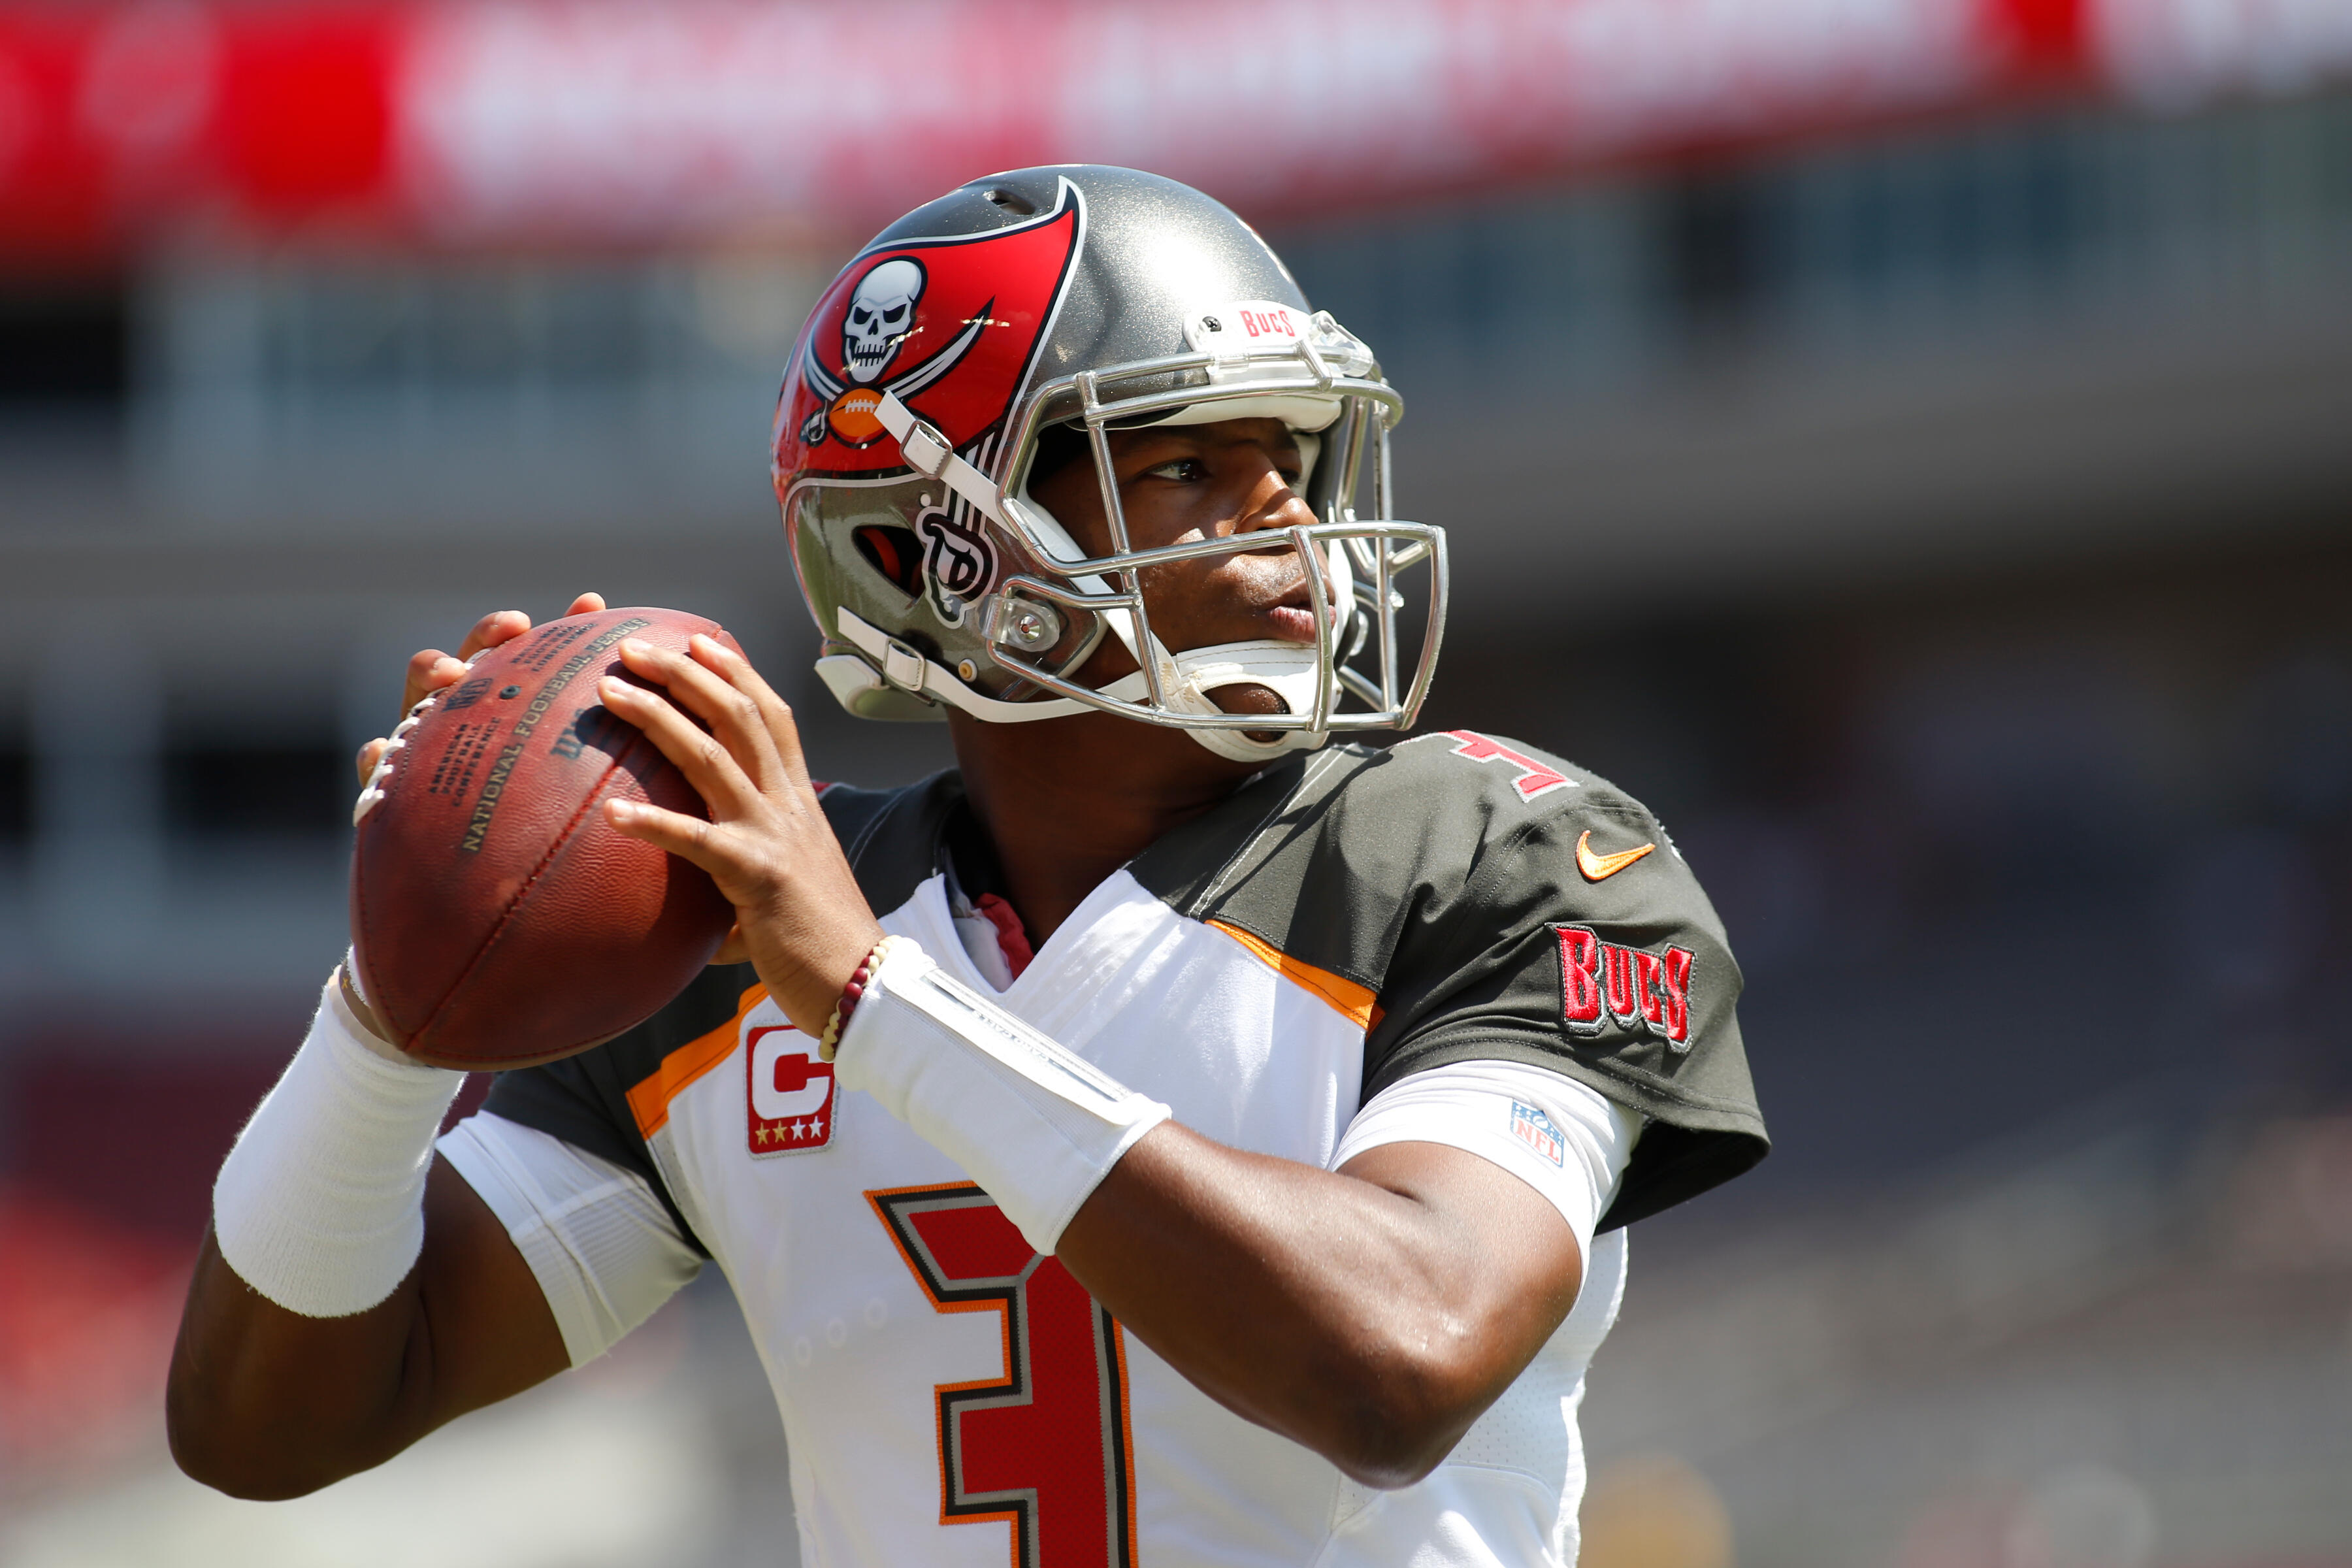 TAMPA, FL - SEPTEMBER 17: Quarterback Jameis Winston #3 of the Tampa Bay Buccaneers warms up before the start of an NFL football game against the Chicago Bears on September 17, 2017 at Raymond James Stadium in Tampa, Florida. (Photo by Brian Blanco/Getty Images)